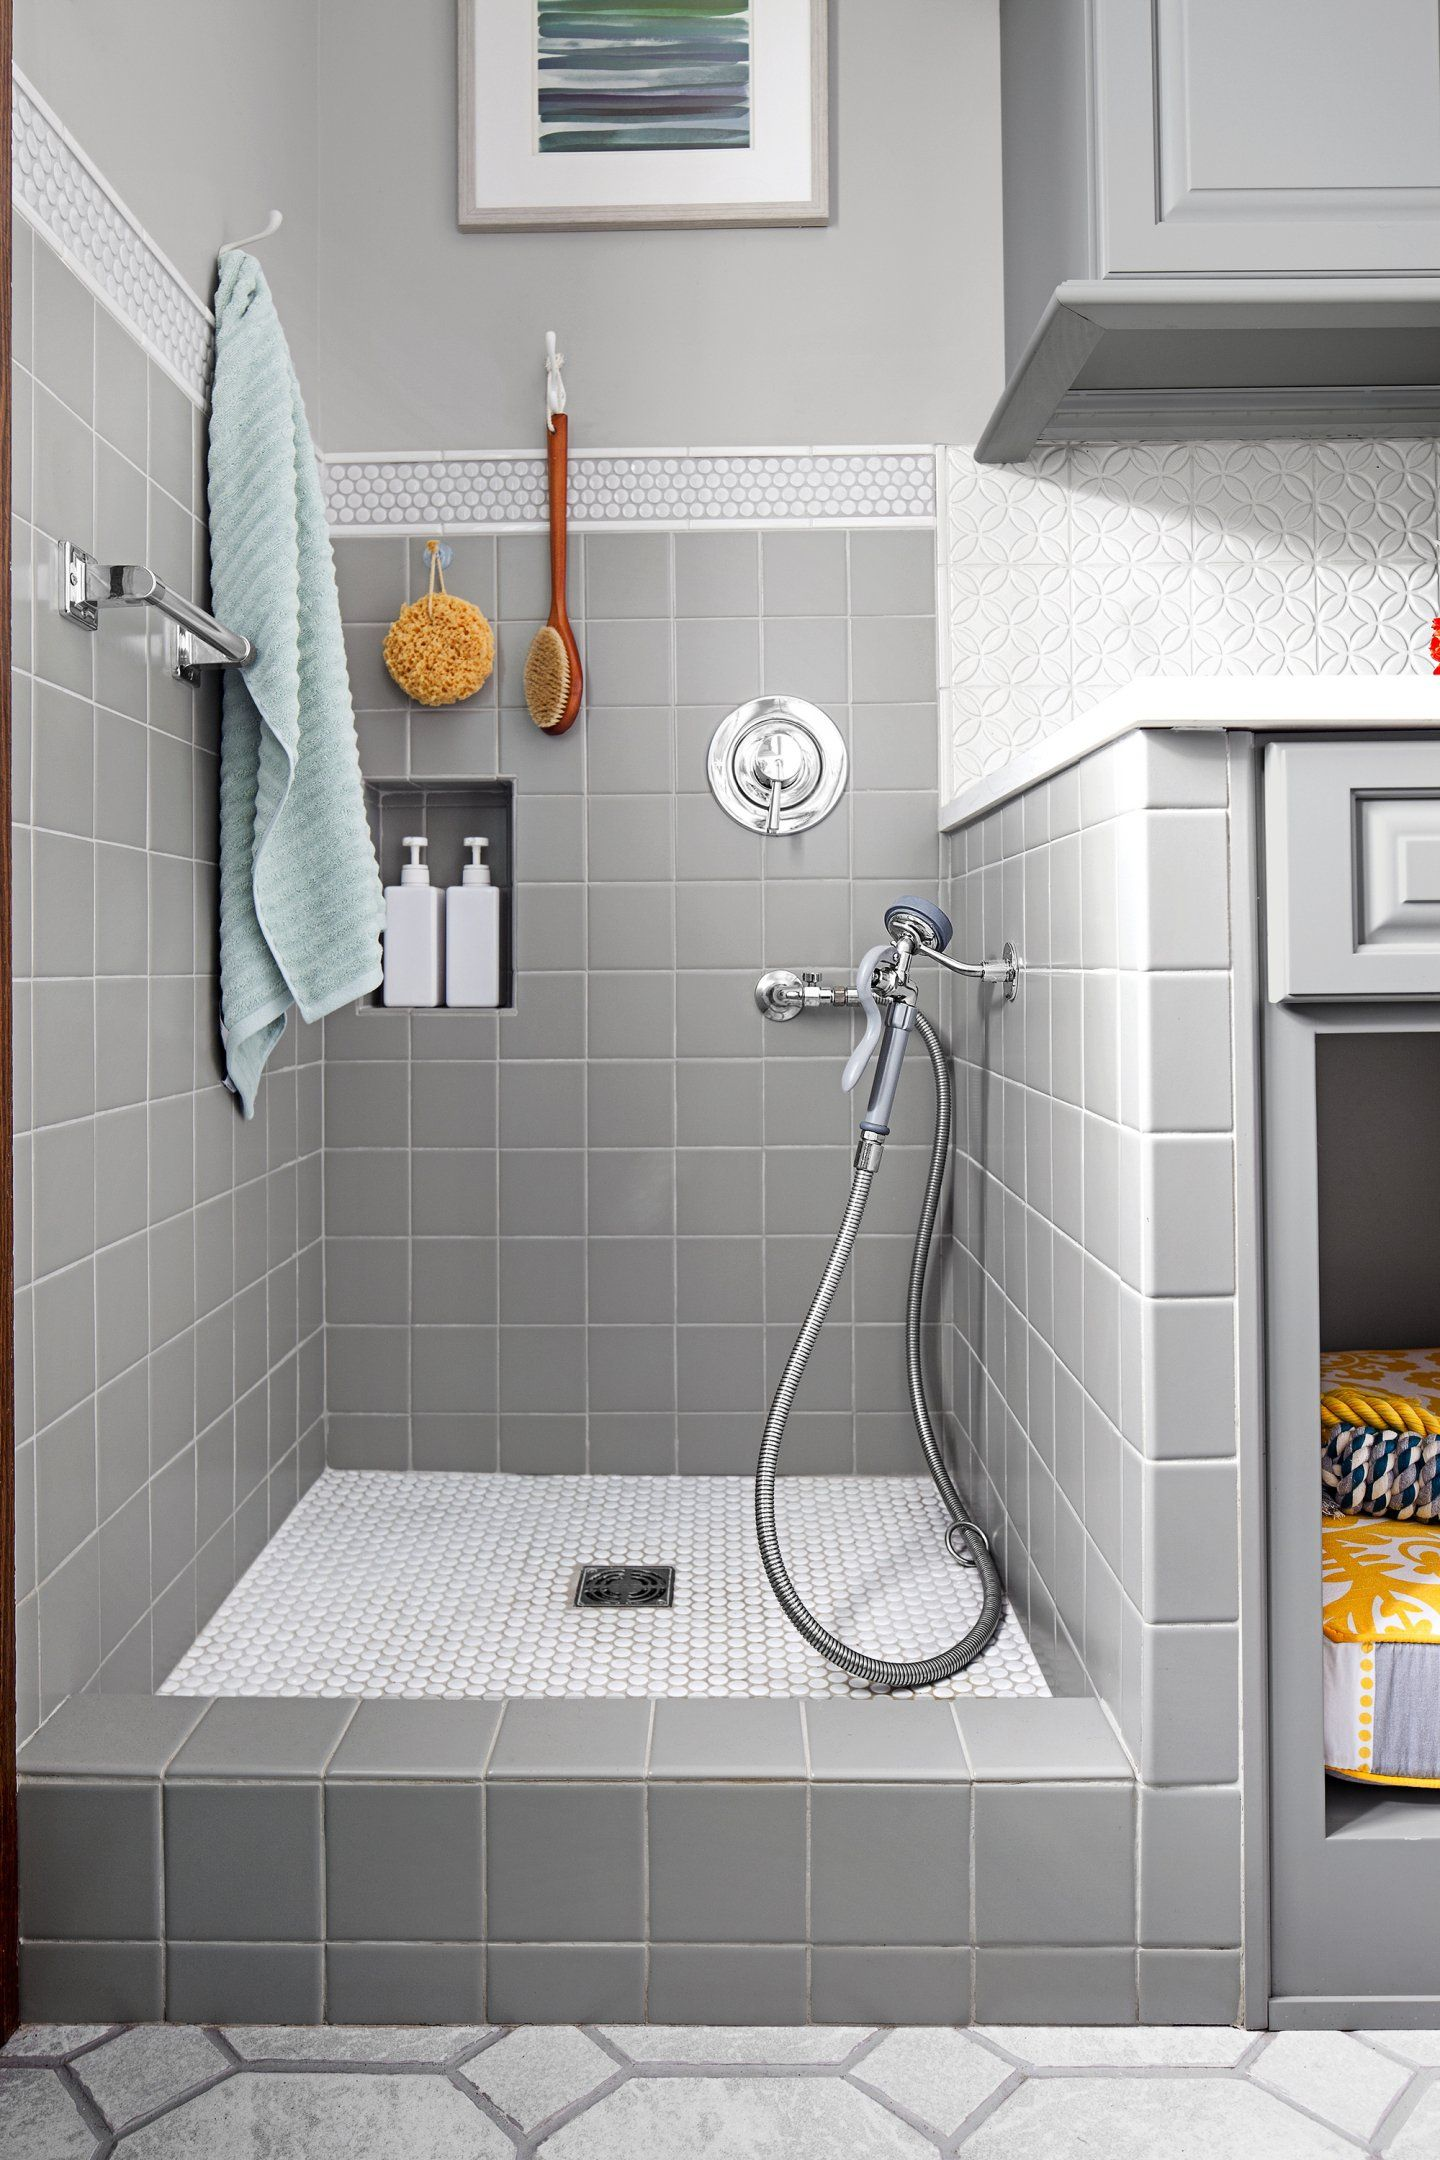 Laundry Room for Vertical Spaces  PetFriendly Home